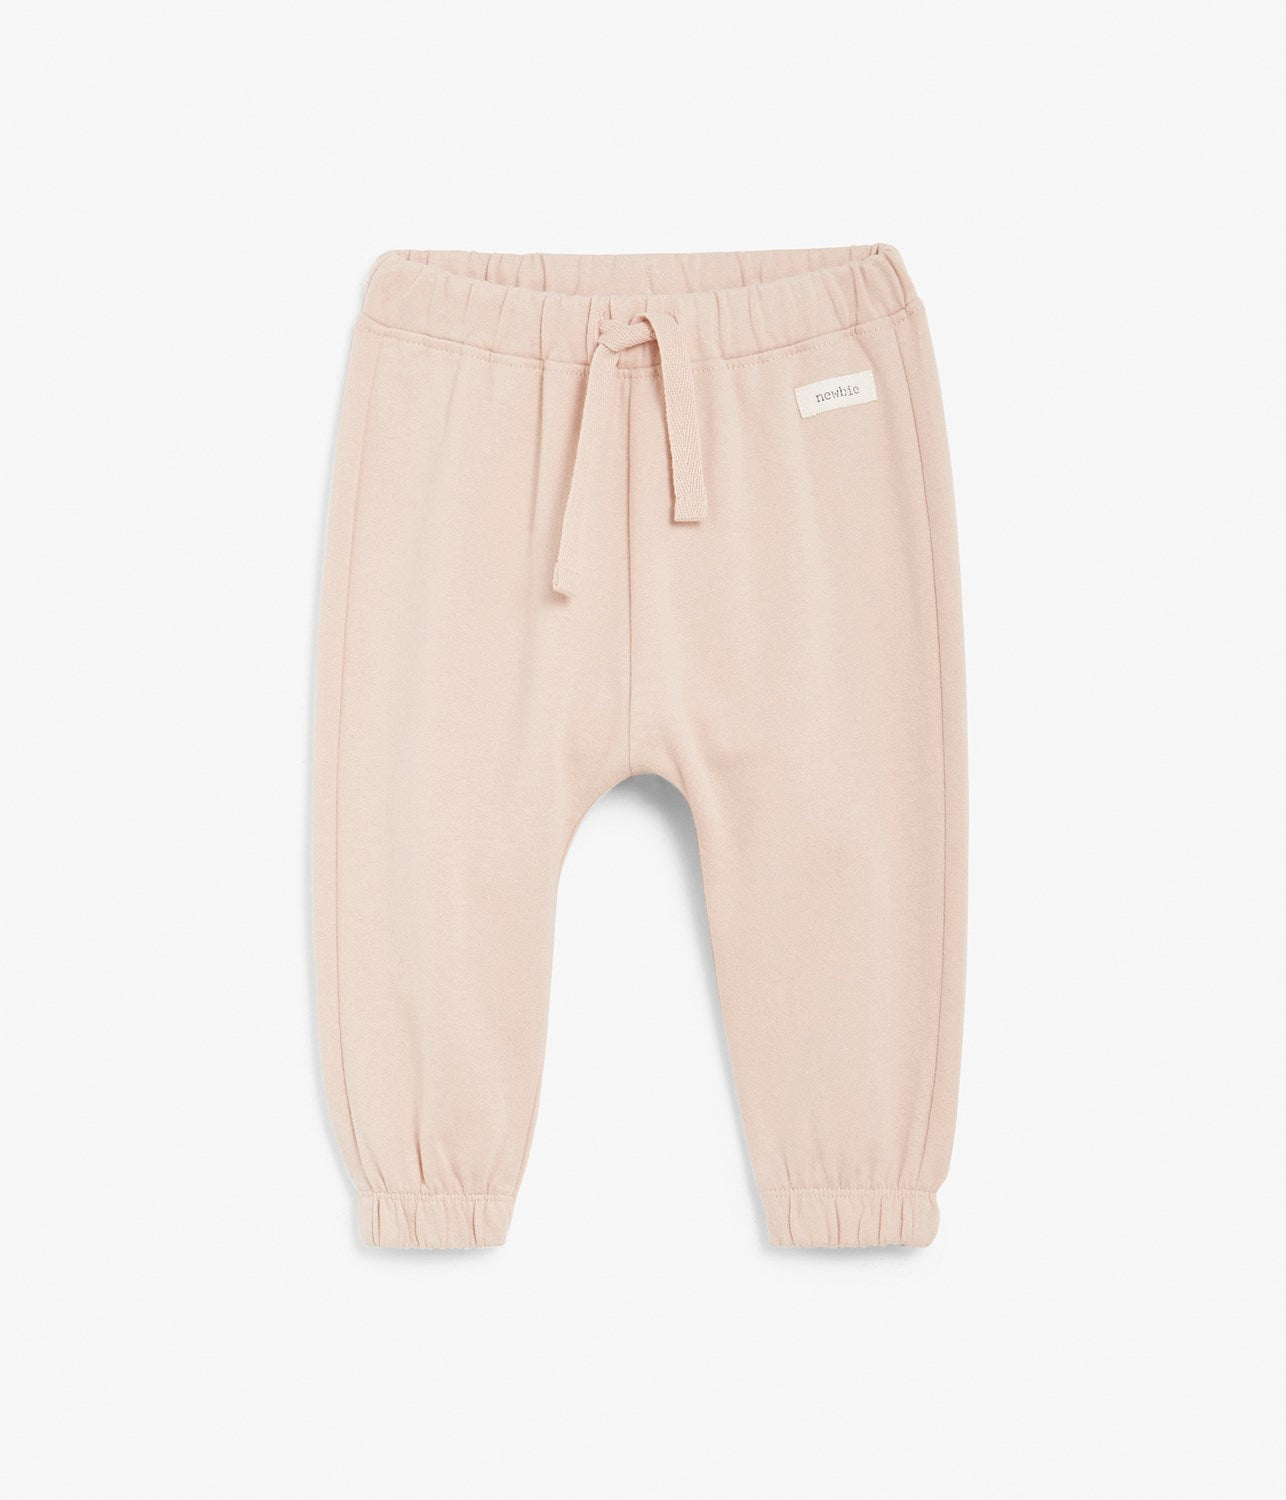 Baby pink sweatpants with deer face